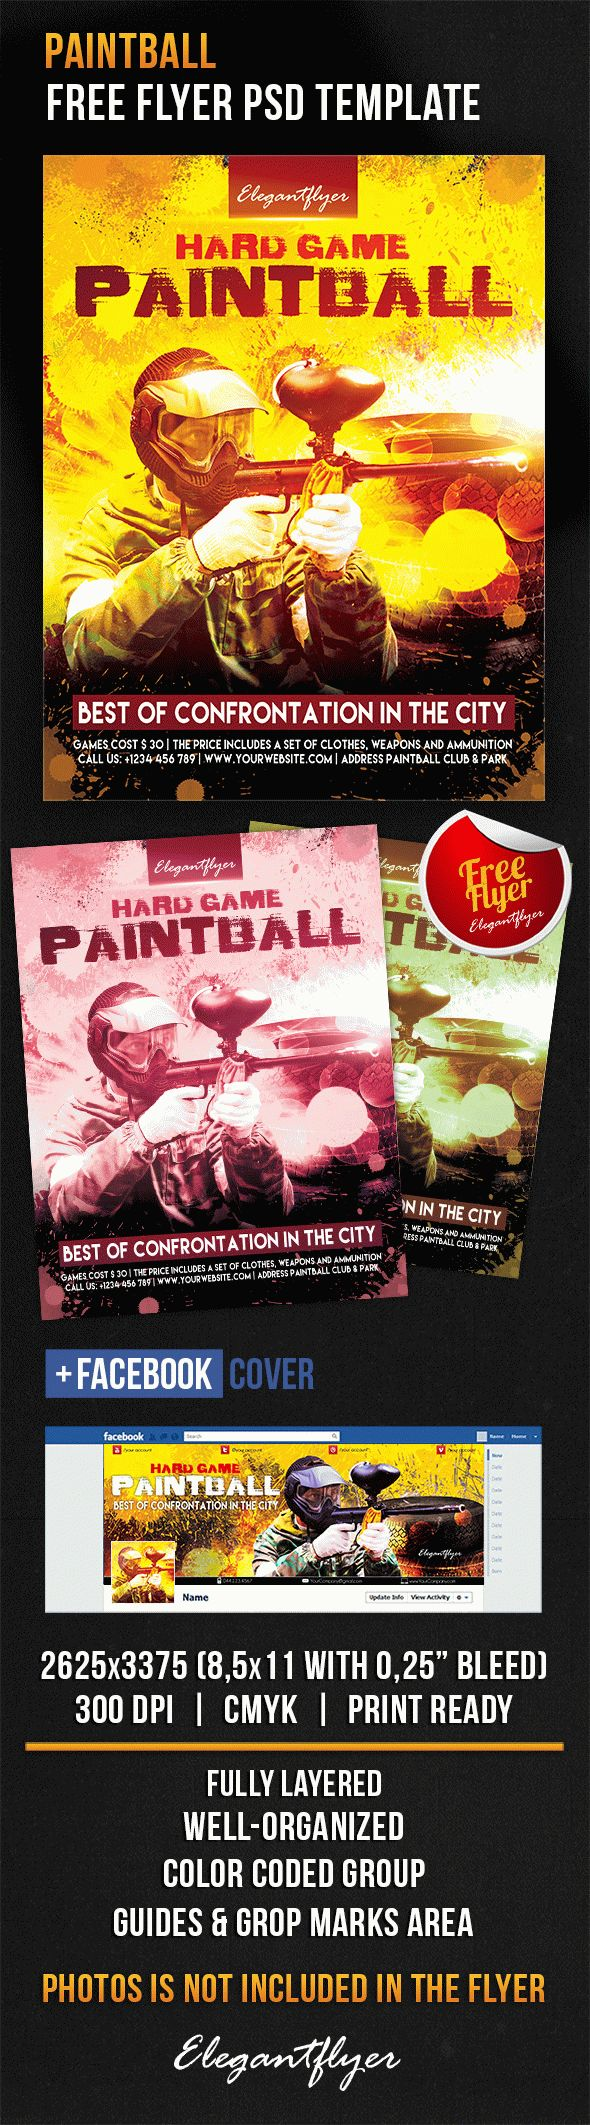 Paintball – Free Flyer PSD Template + Facebook Cover